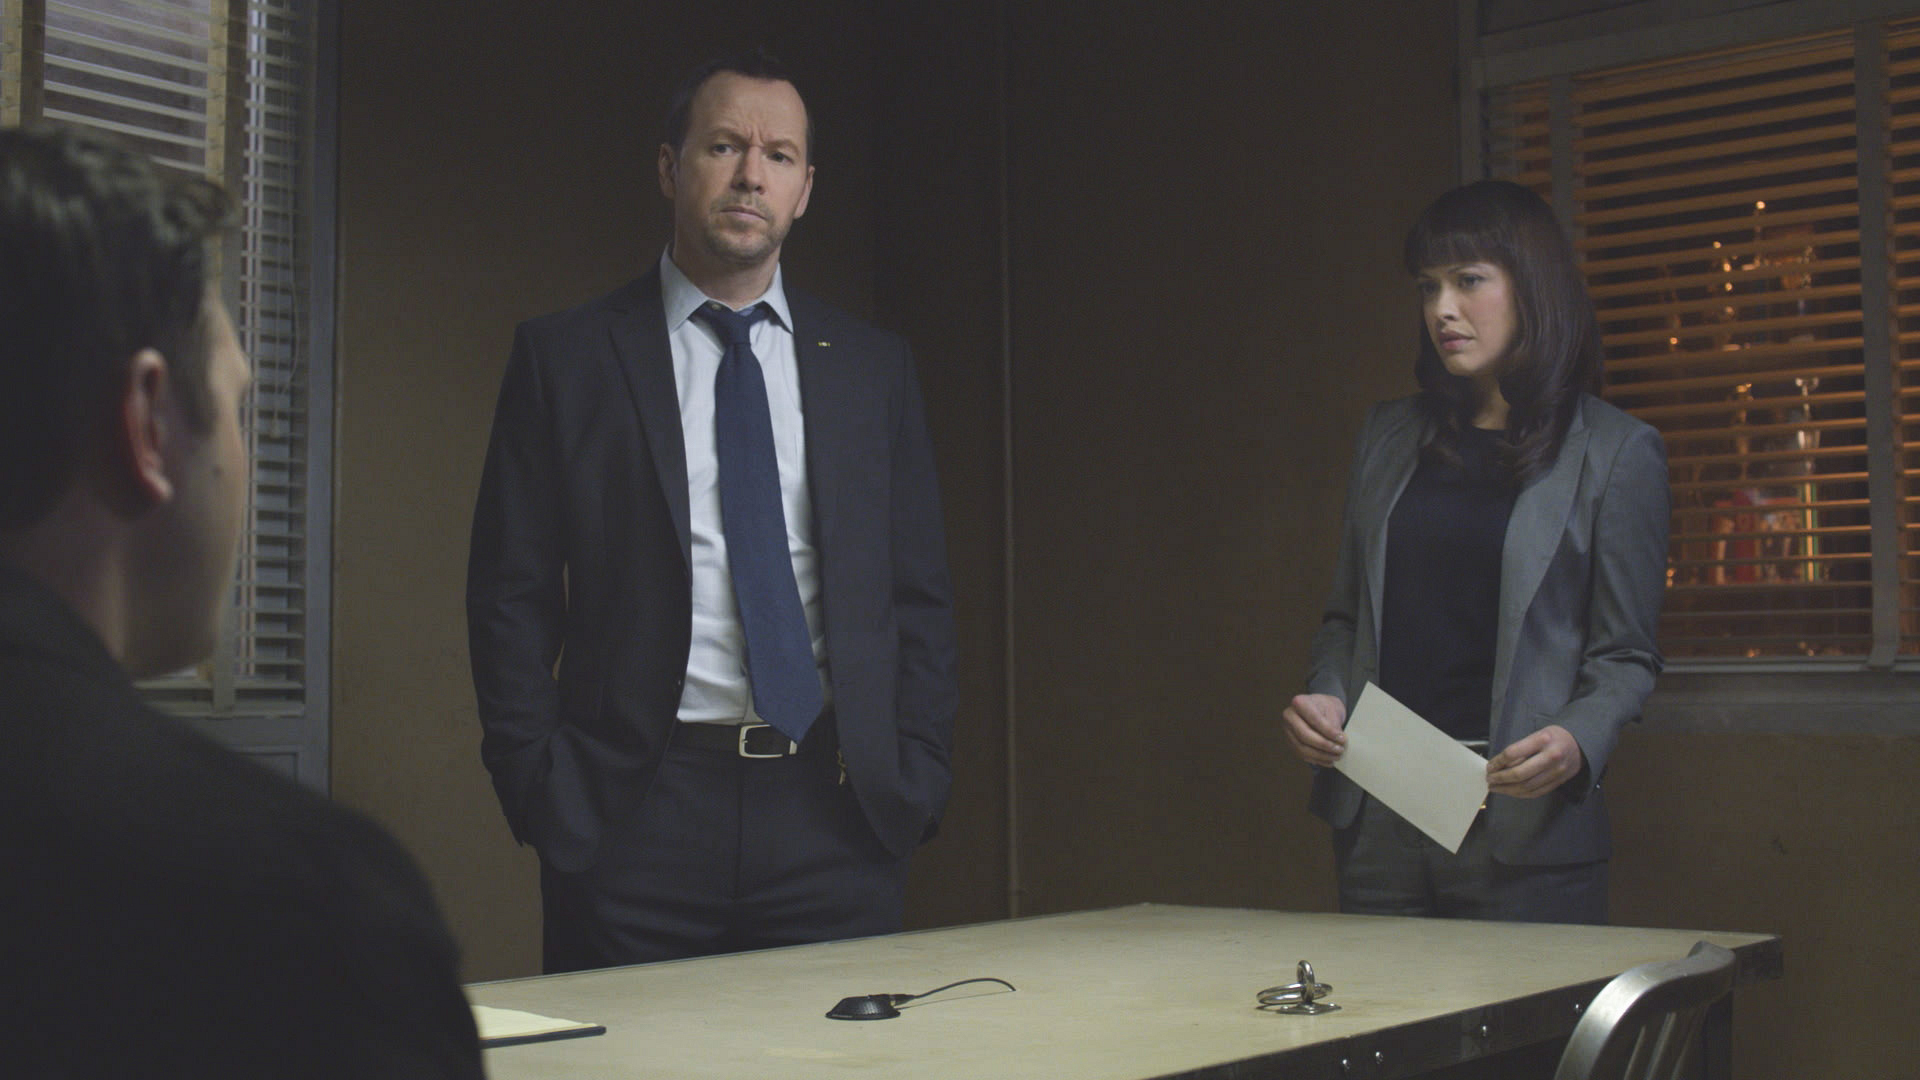 Season 4 Episode 15 - Blue Bloods - CBS.com